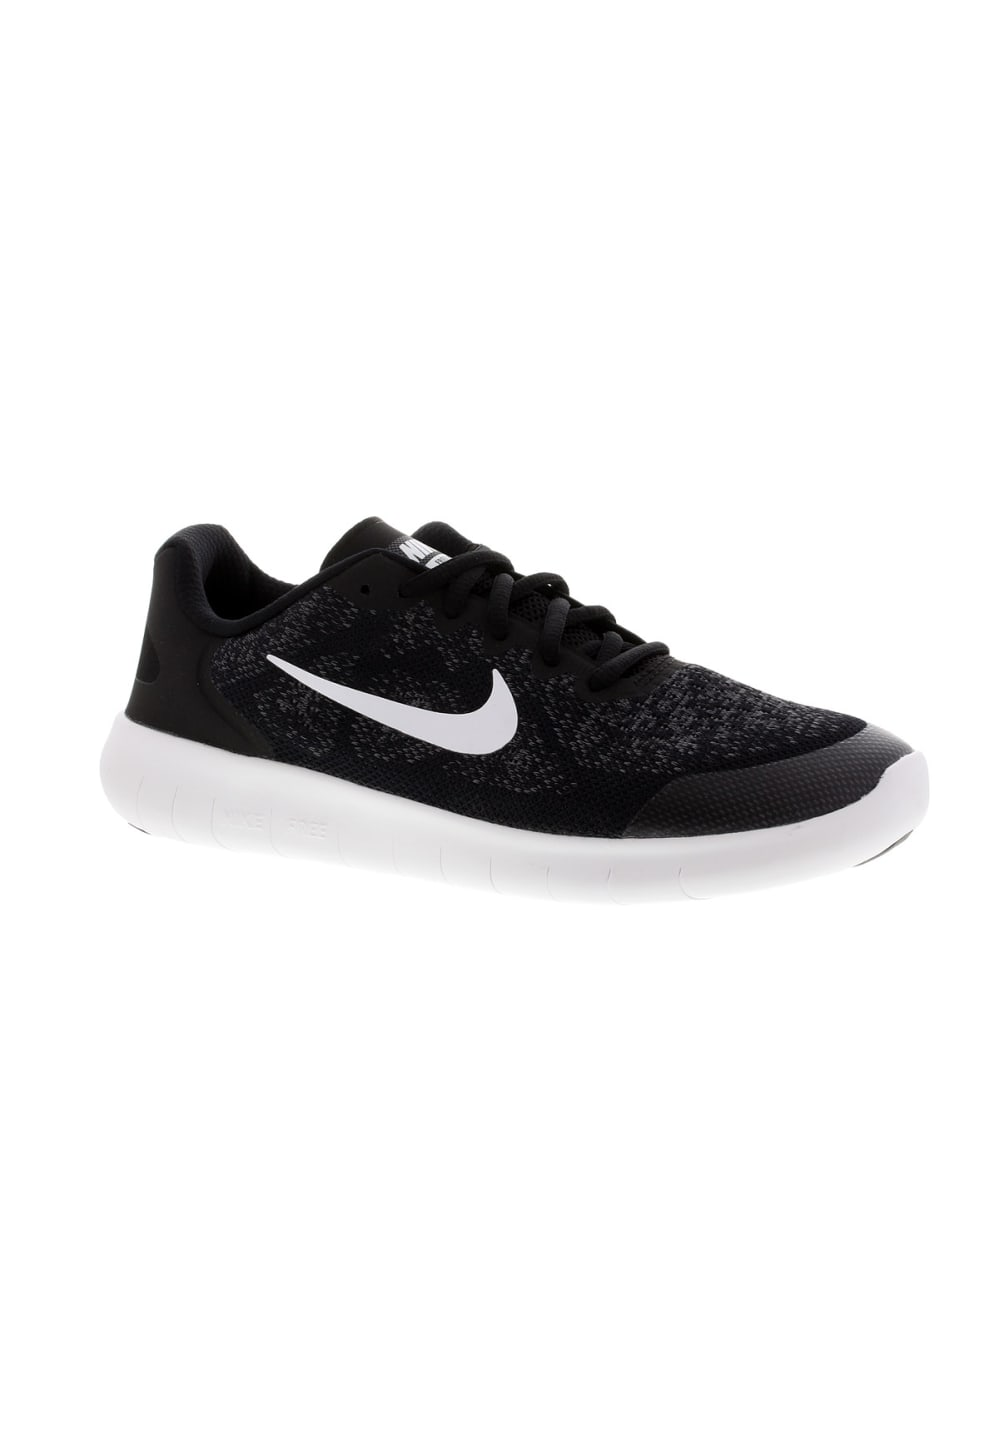 new arrivals fa401 01a55 Next. -60%. Nike. Boys Free RN 2 GS - Running shoes